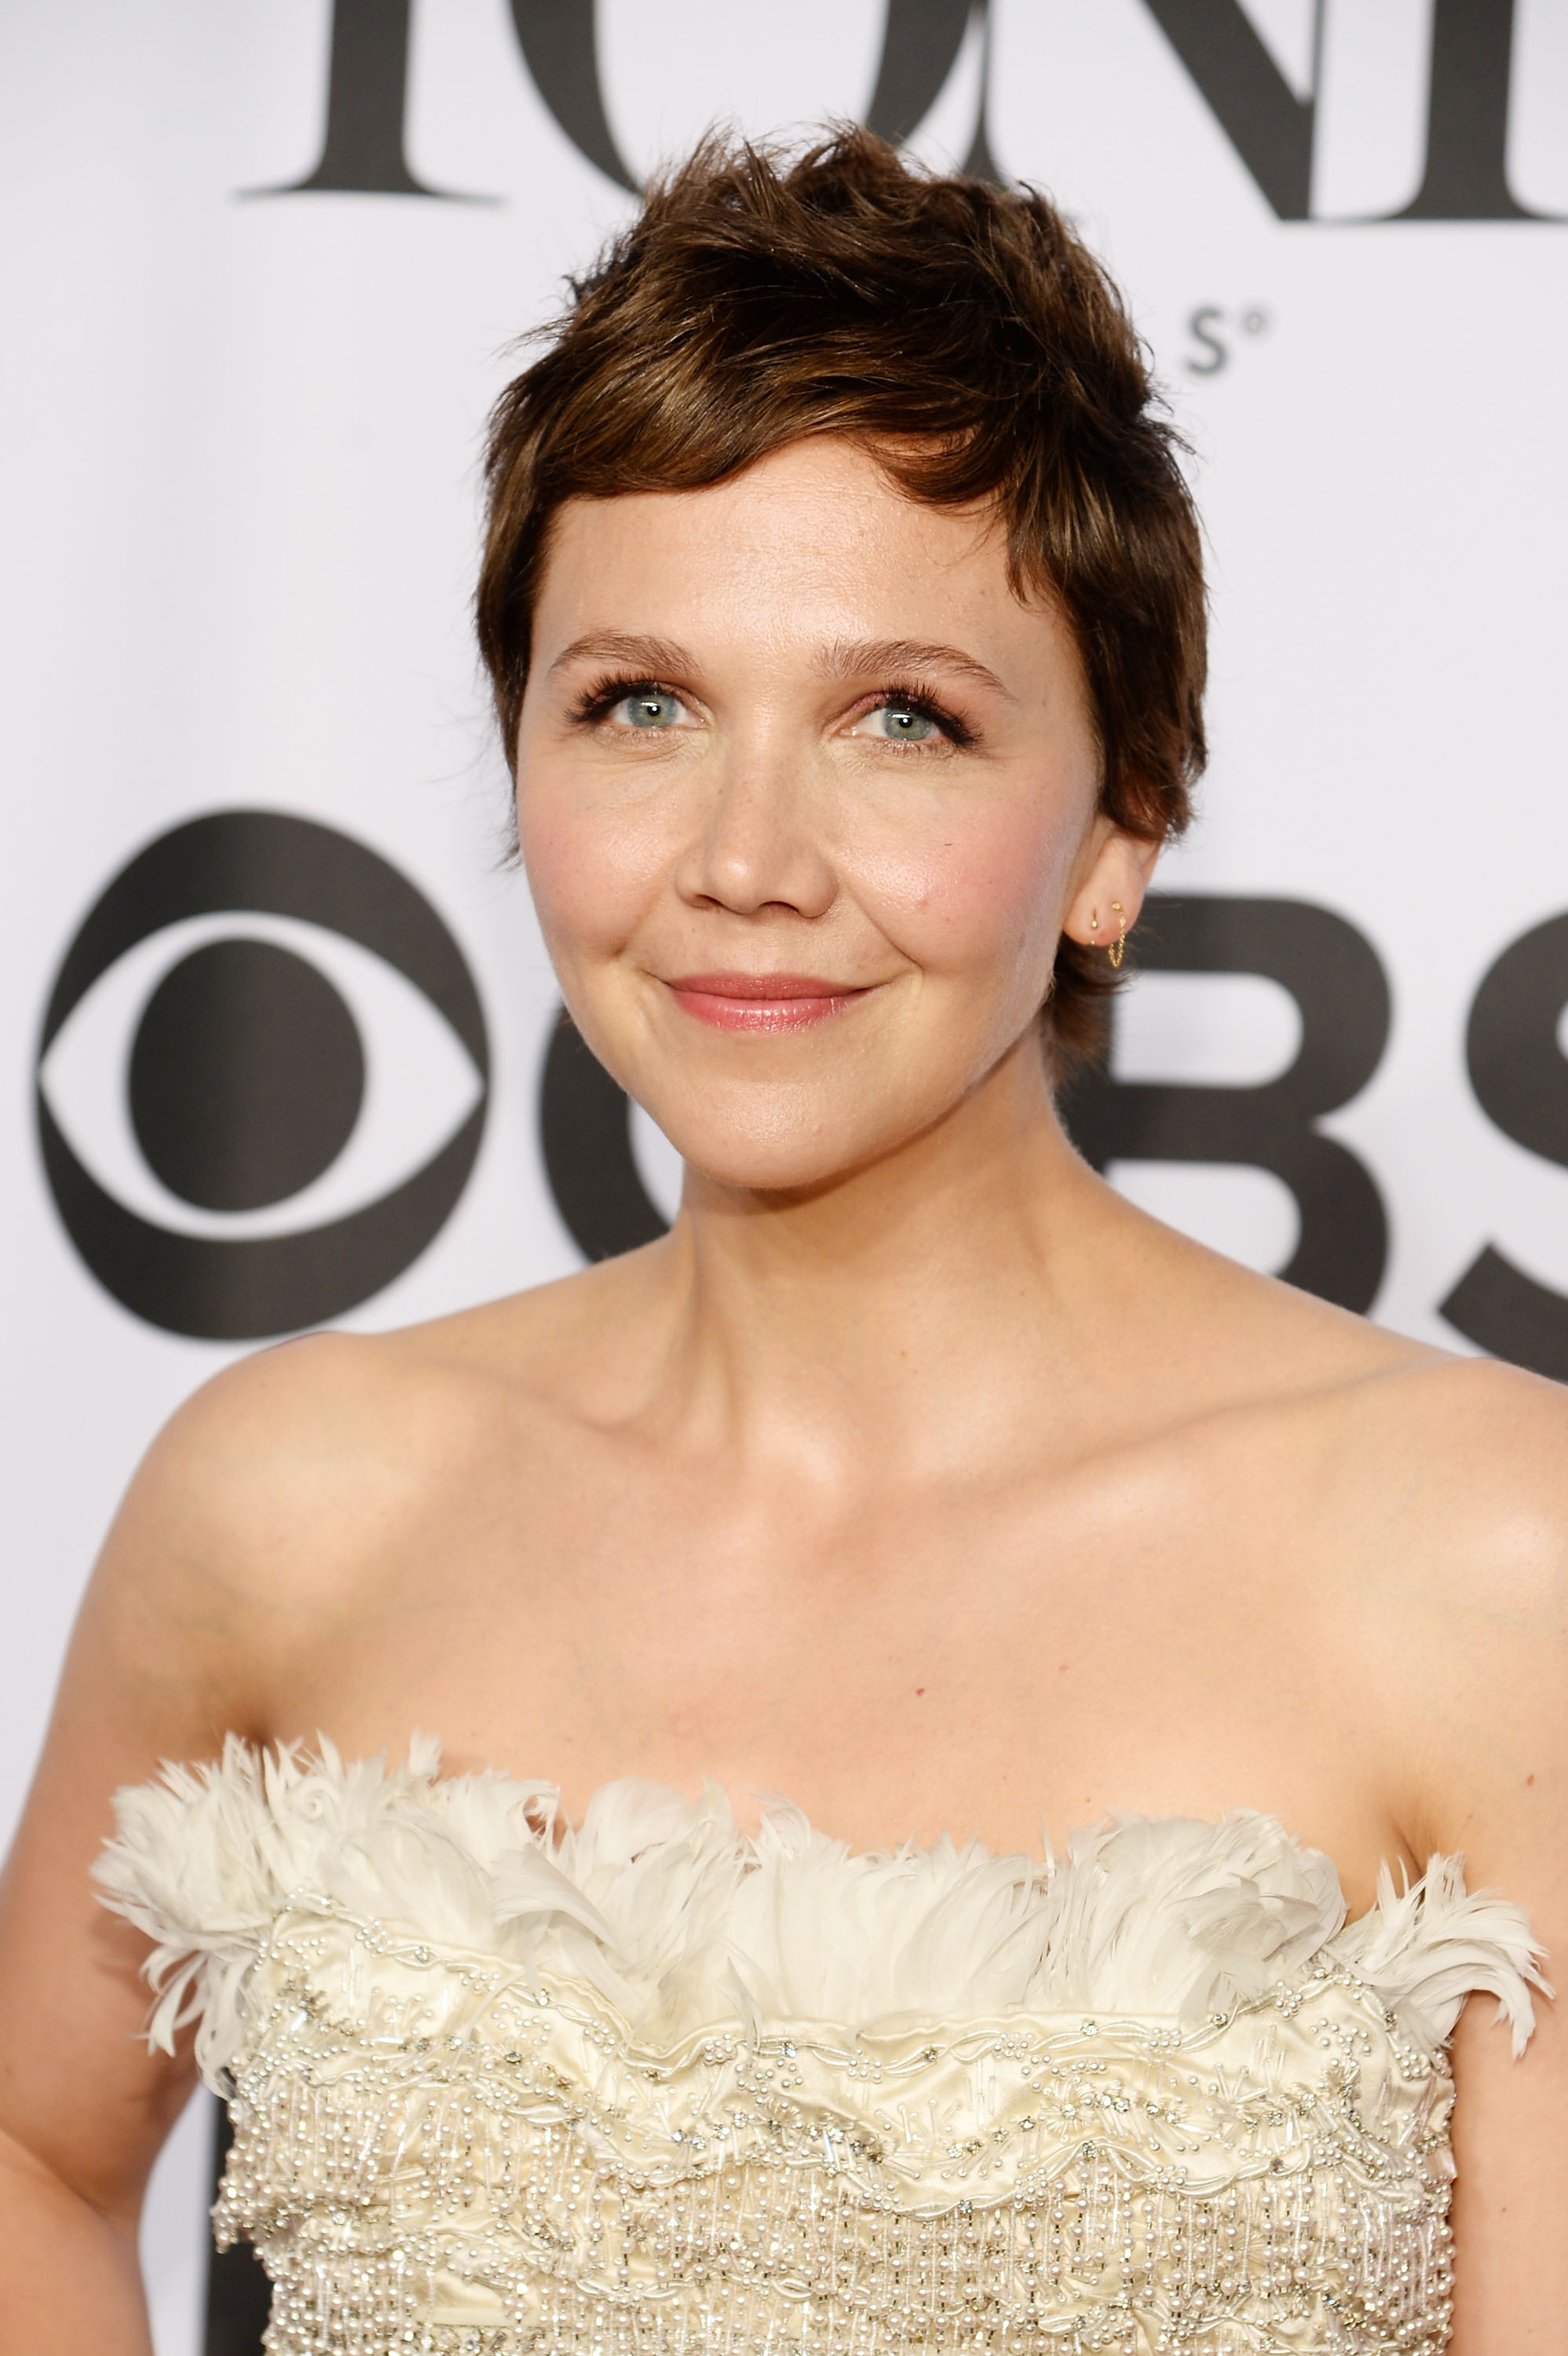 Actress Maggie Gyllenhaal attends the 68th Annual Tony Awards at Radio City Music Hall on June 8, 2014 in New York City.